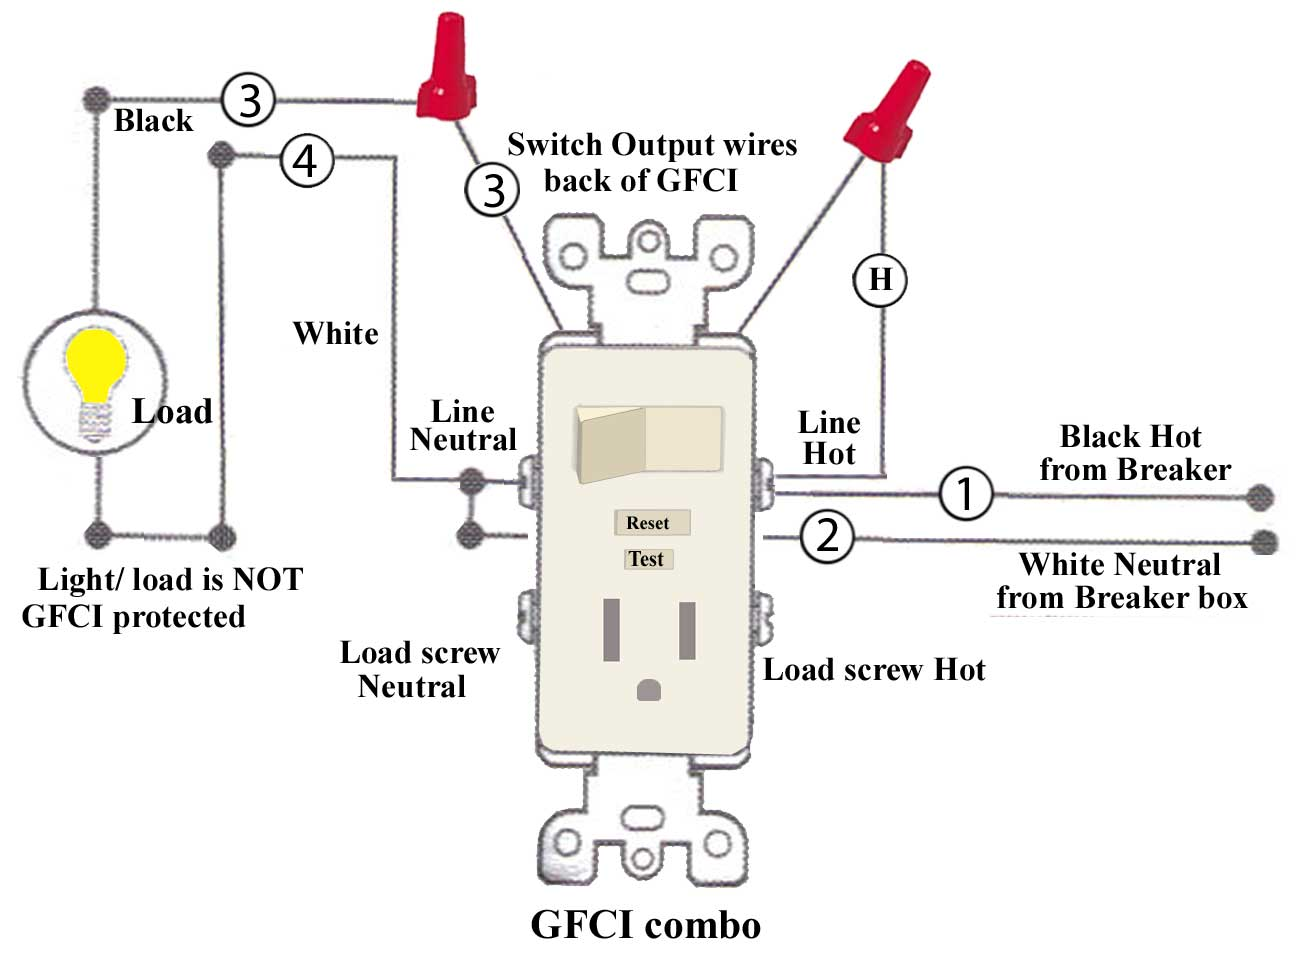 Wiring an outlet switch combo electrical work wiring diagram wiring diagram for outlet switch combo free download wiring diagram rh xwiaw us wiring switch outlet asfbconference2016 Images